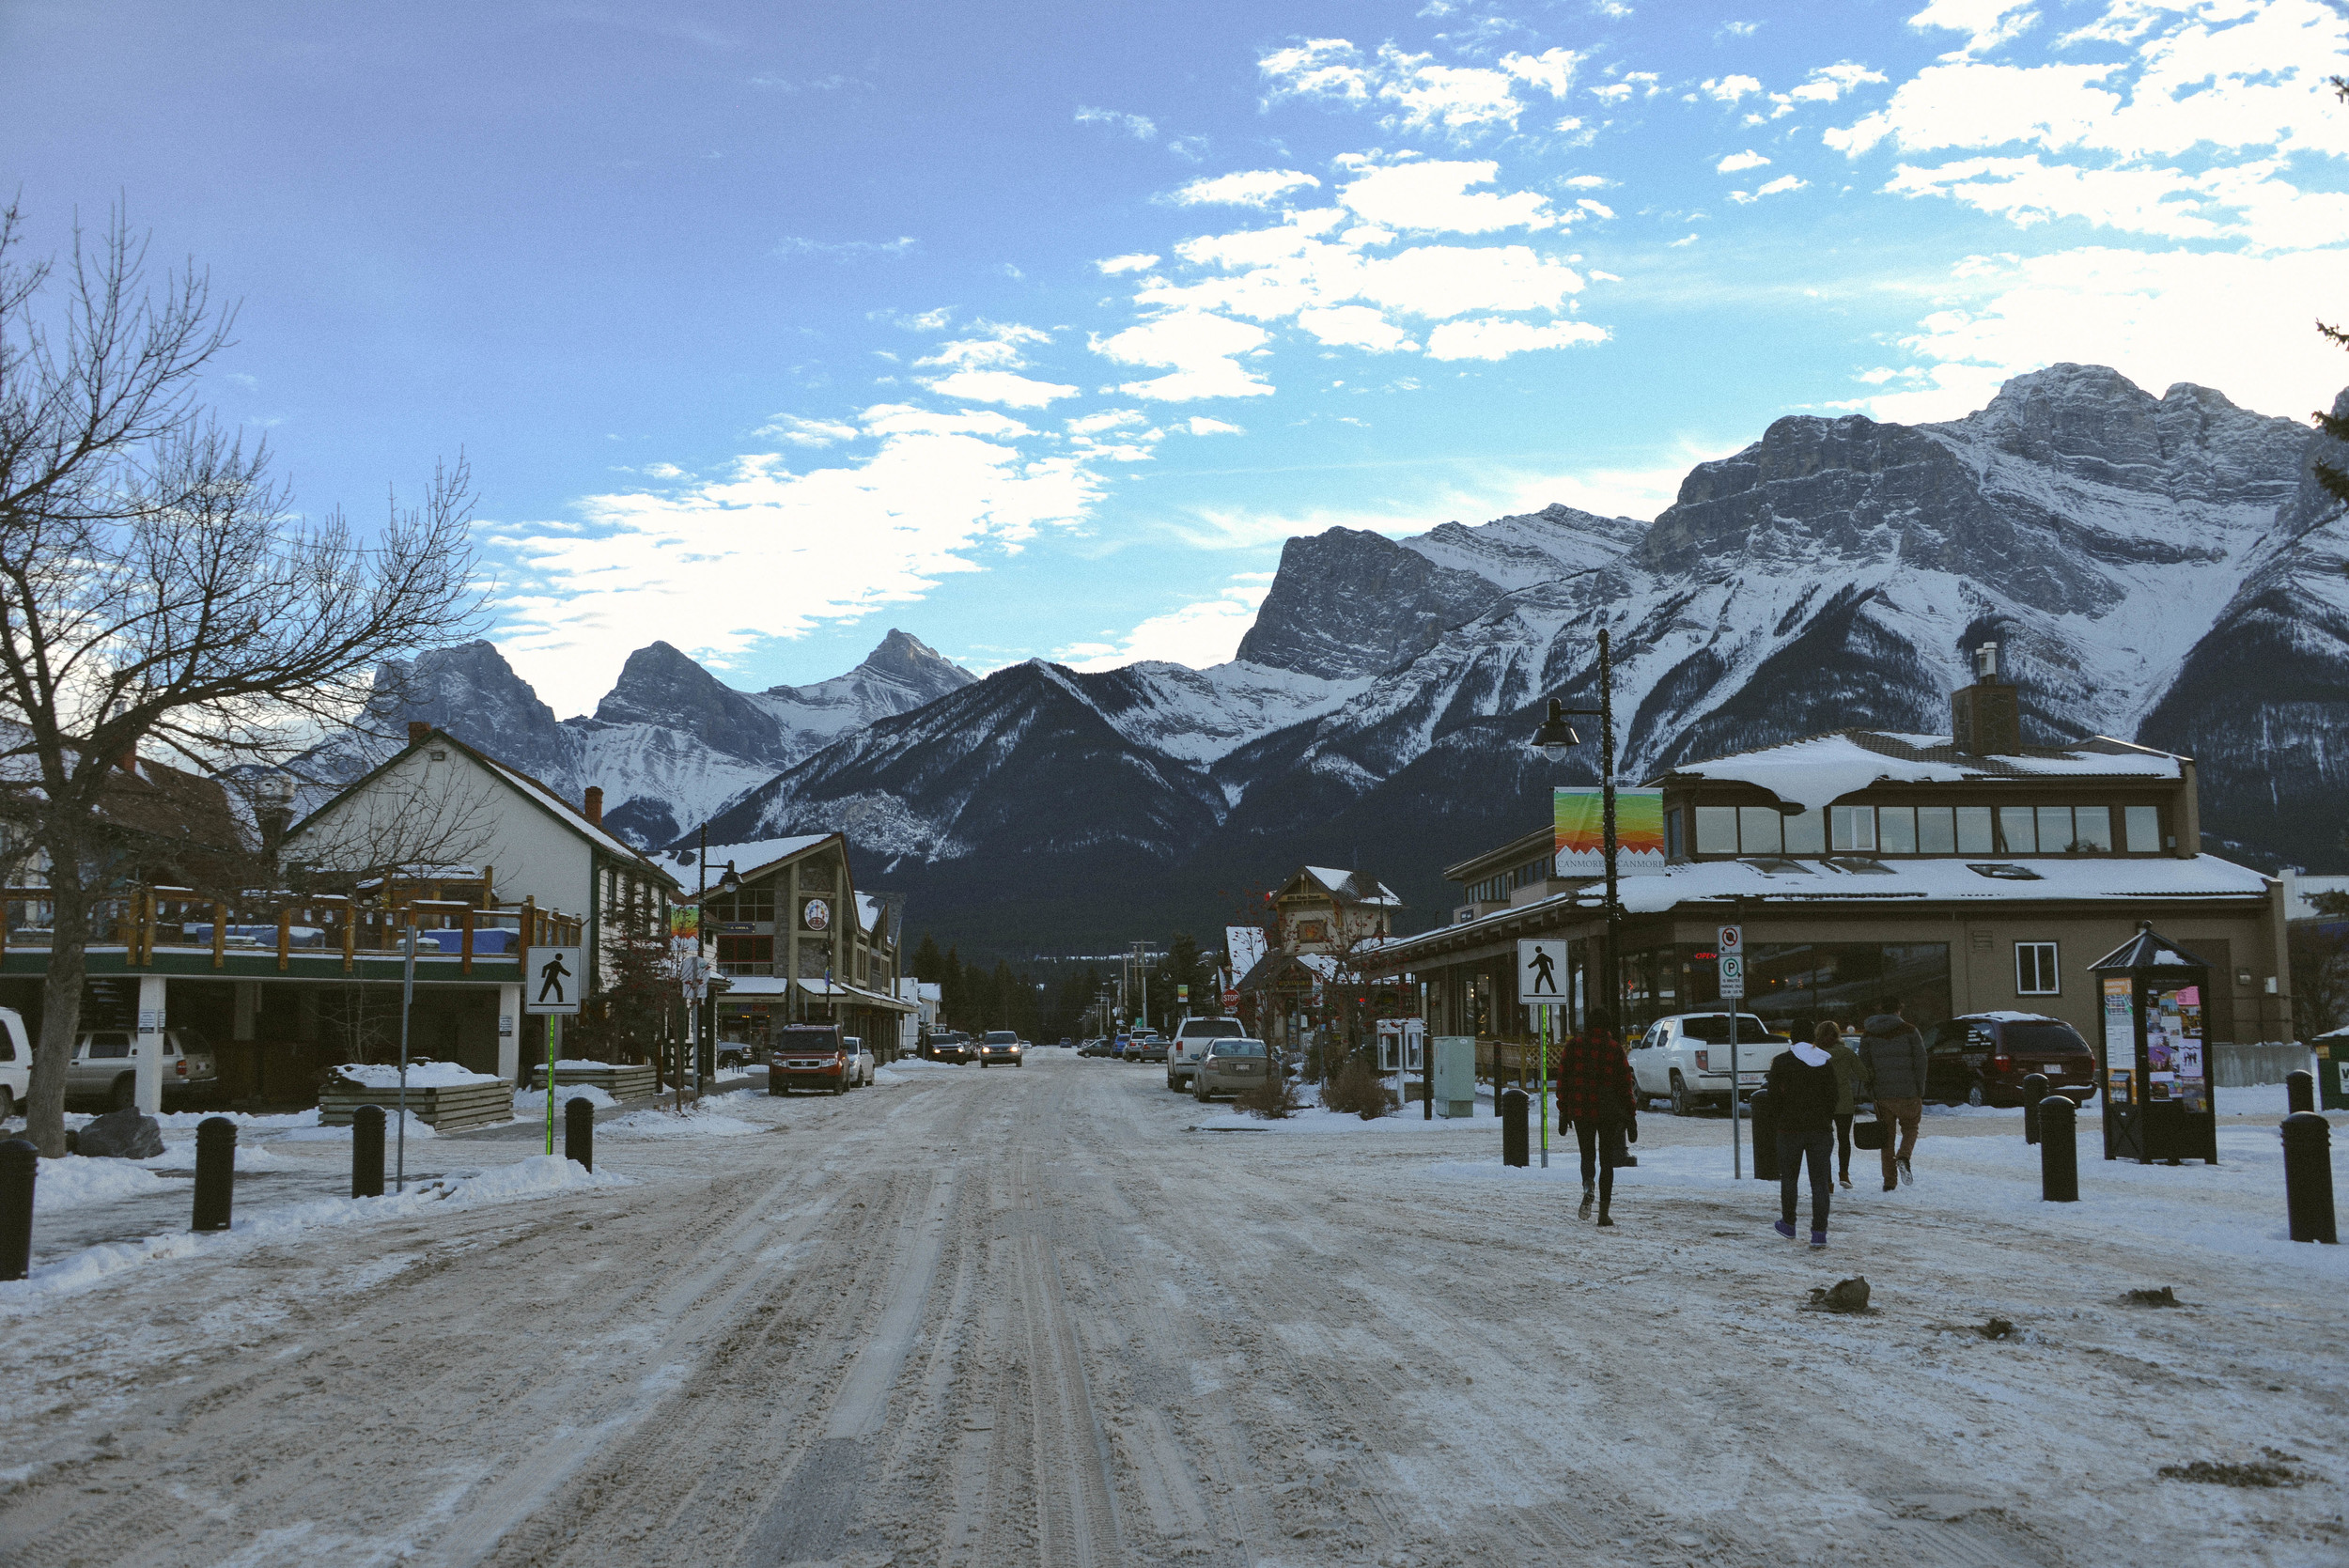 The town of Canmore, just outside of Banff.